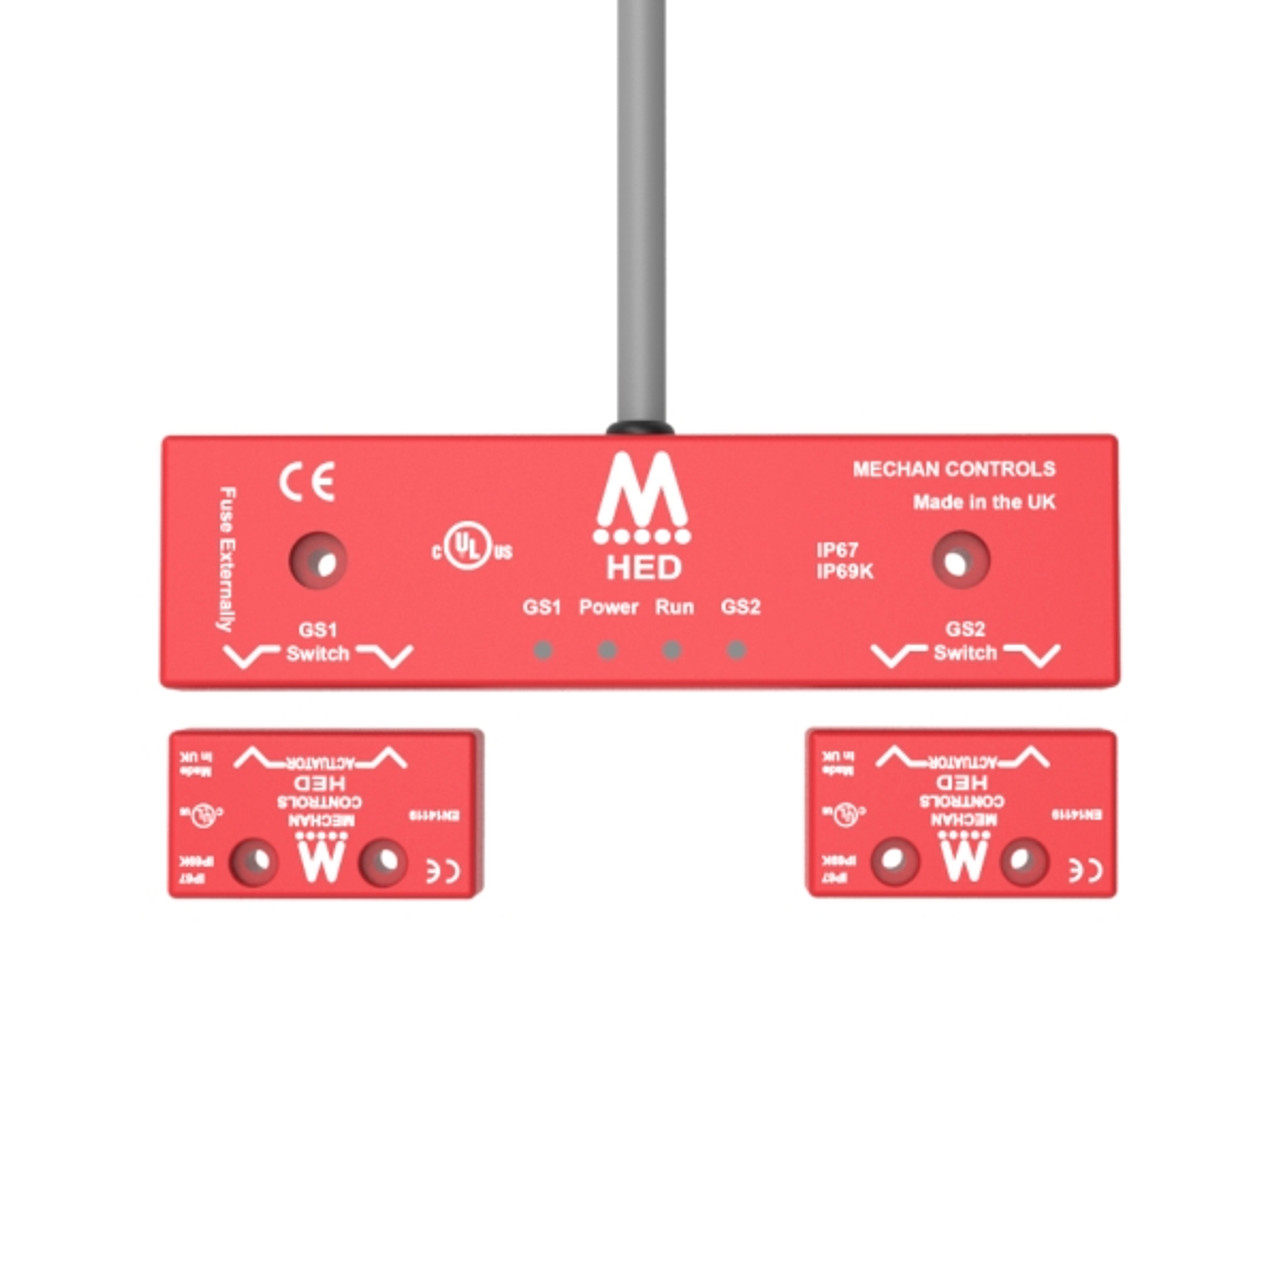 HED Series picture from mechan controls